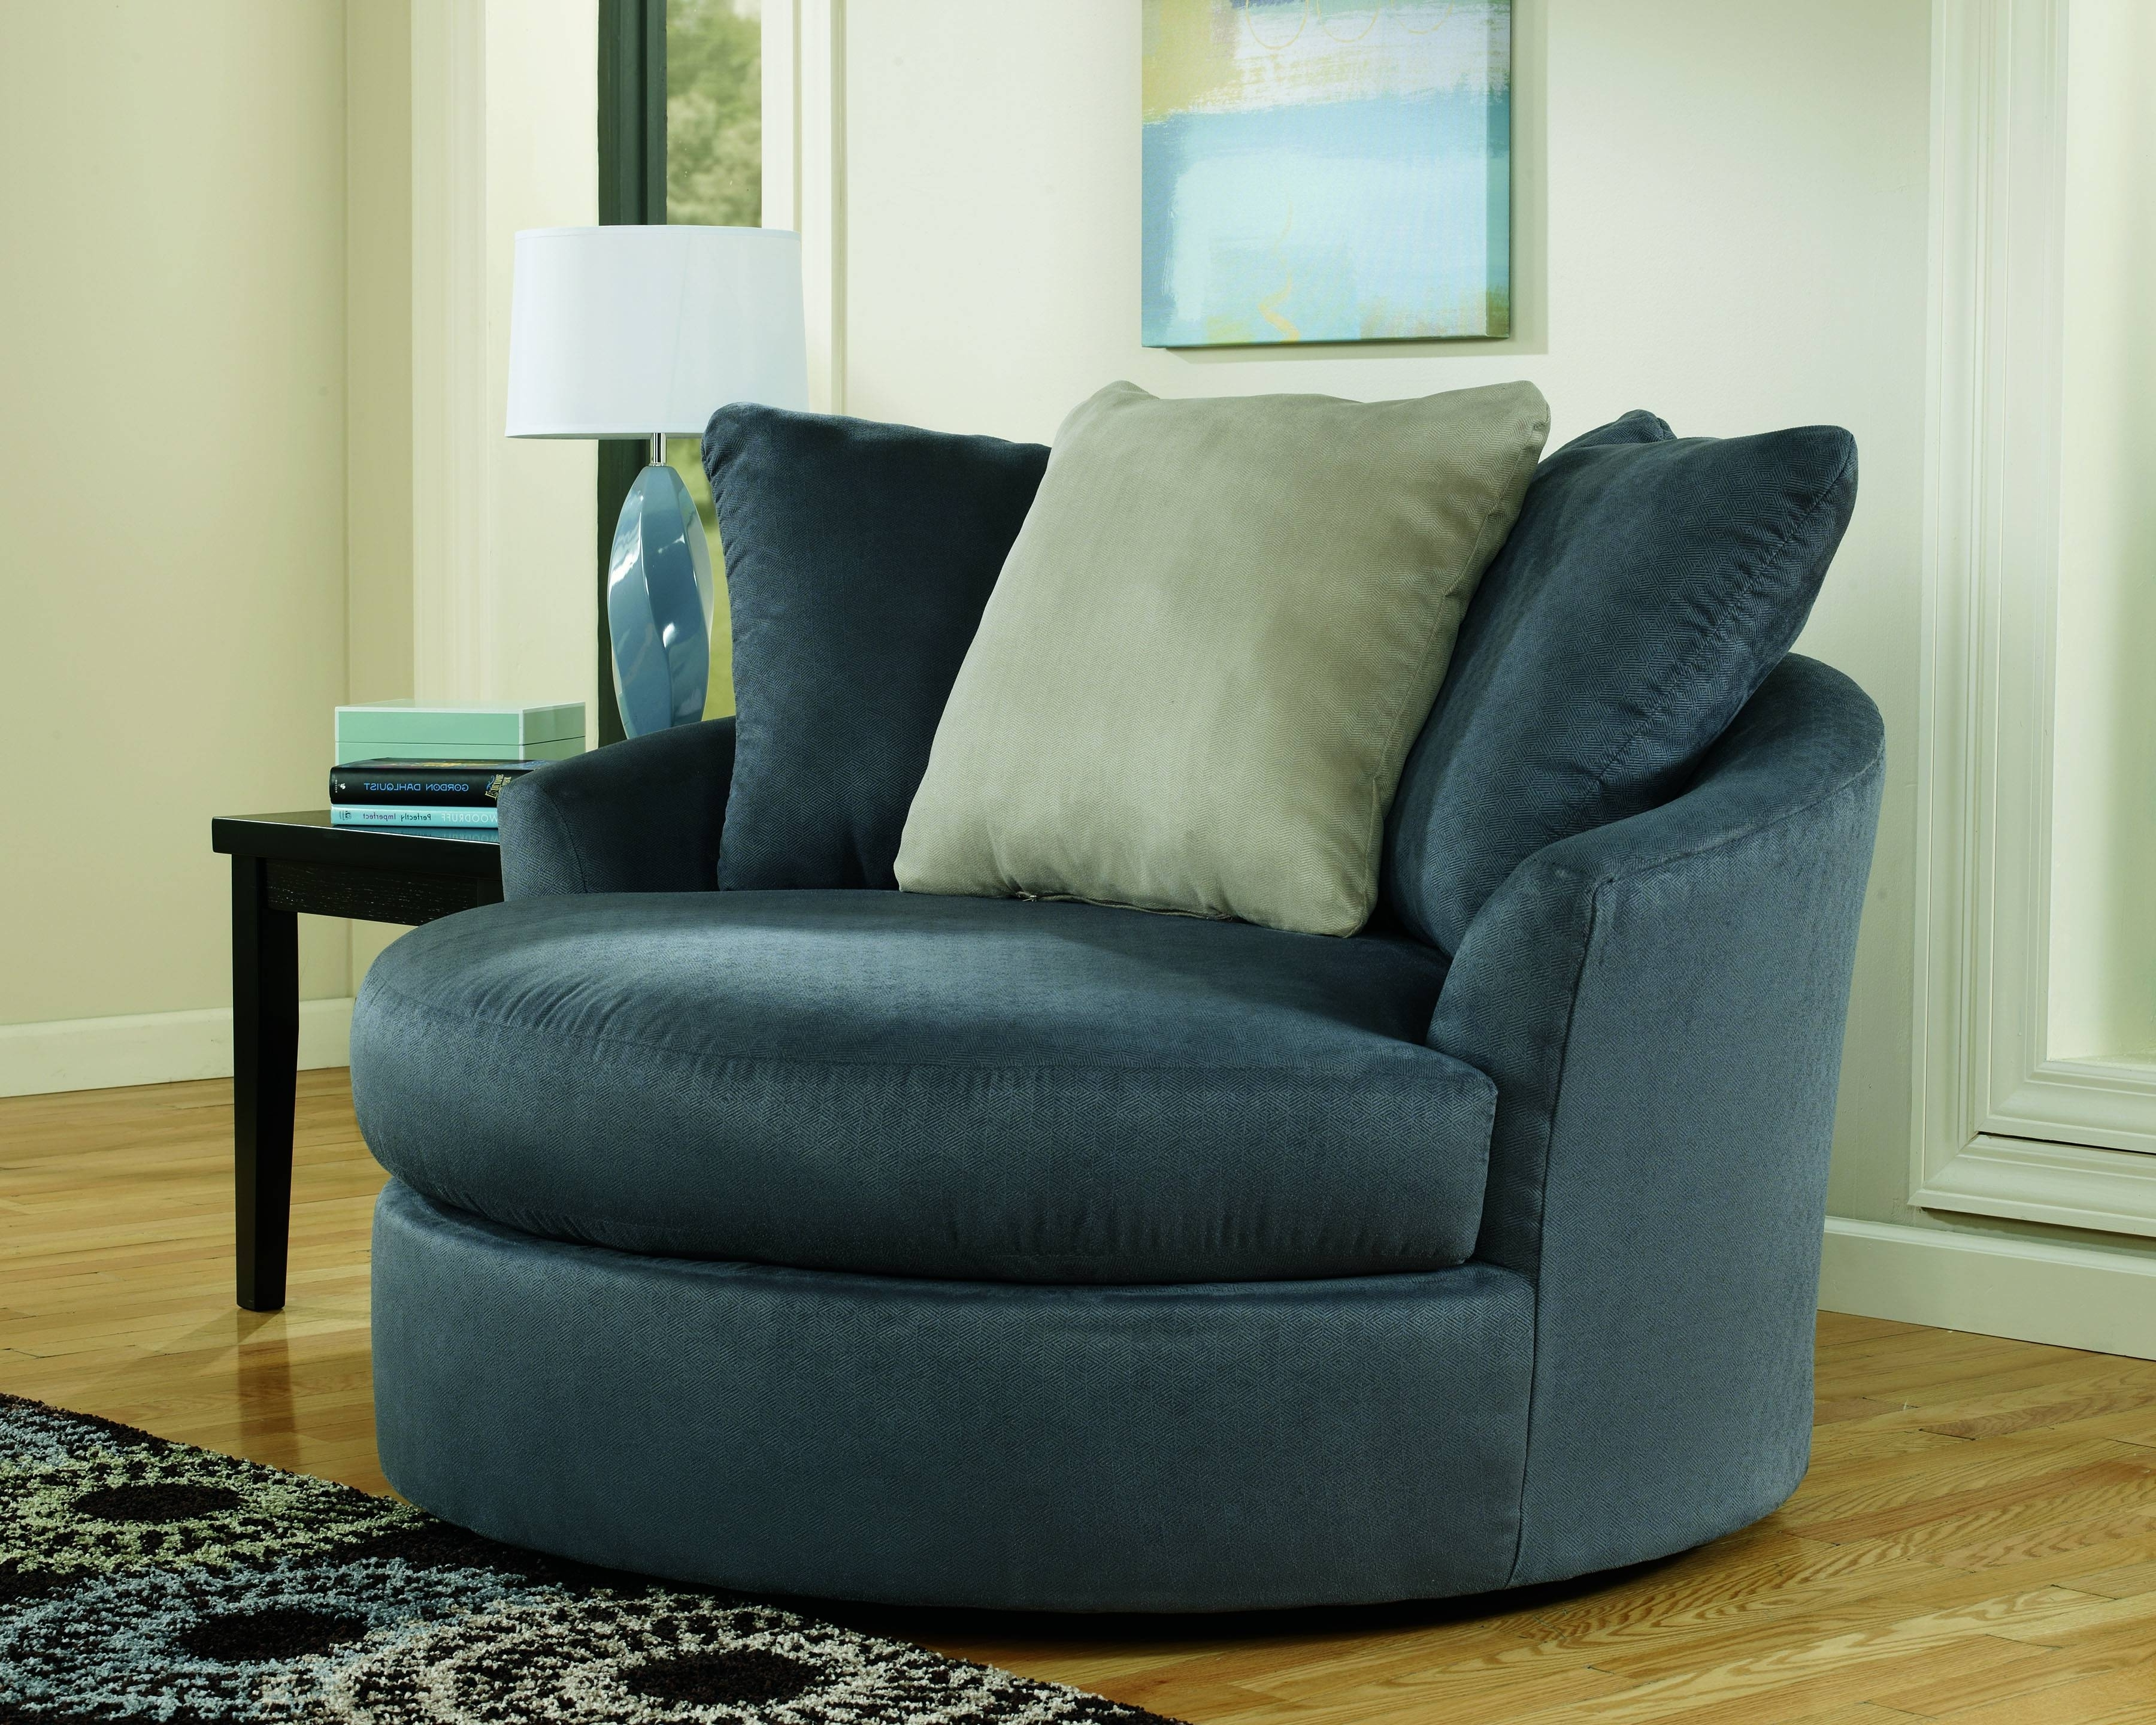 Sofa : Luxury Round Swivel Sofa Chair Latest Large With Crescent Inside Most Popular Round Swivel Sofa Chairs (View 7 of 15)